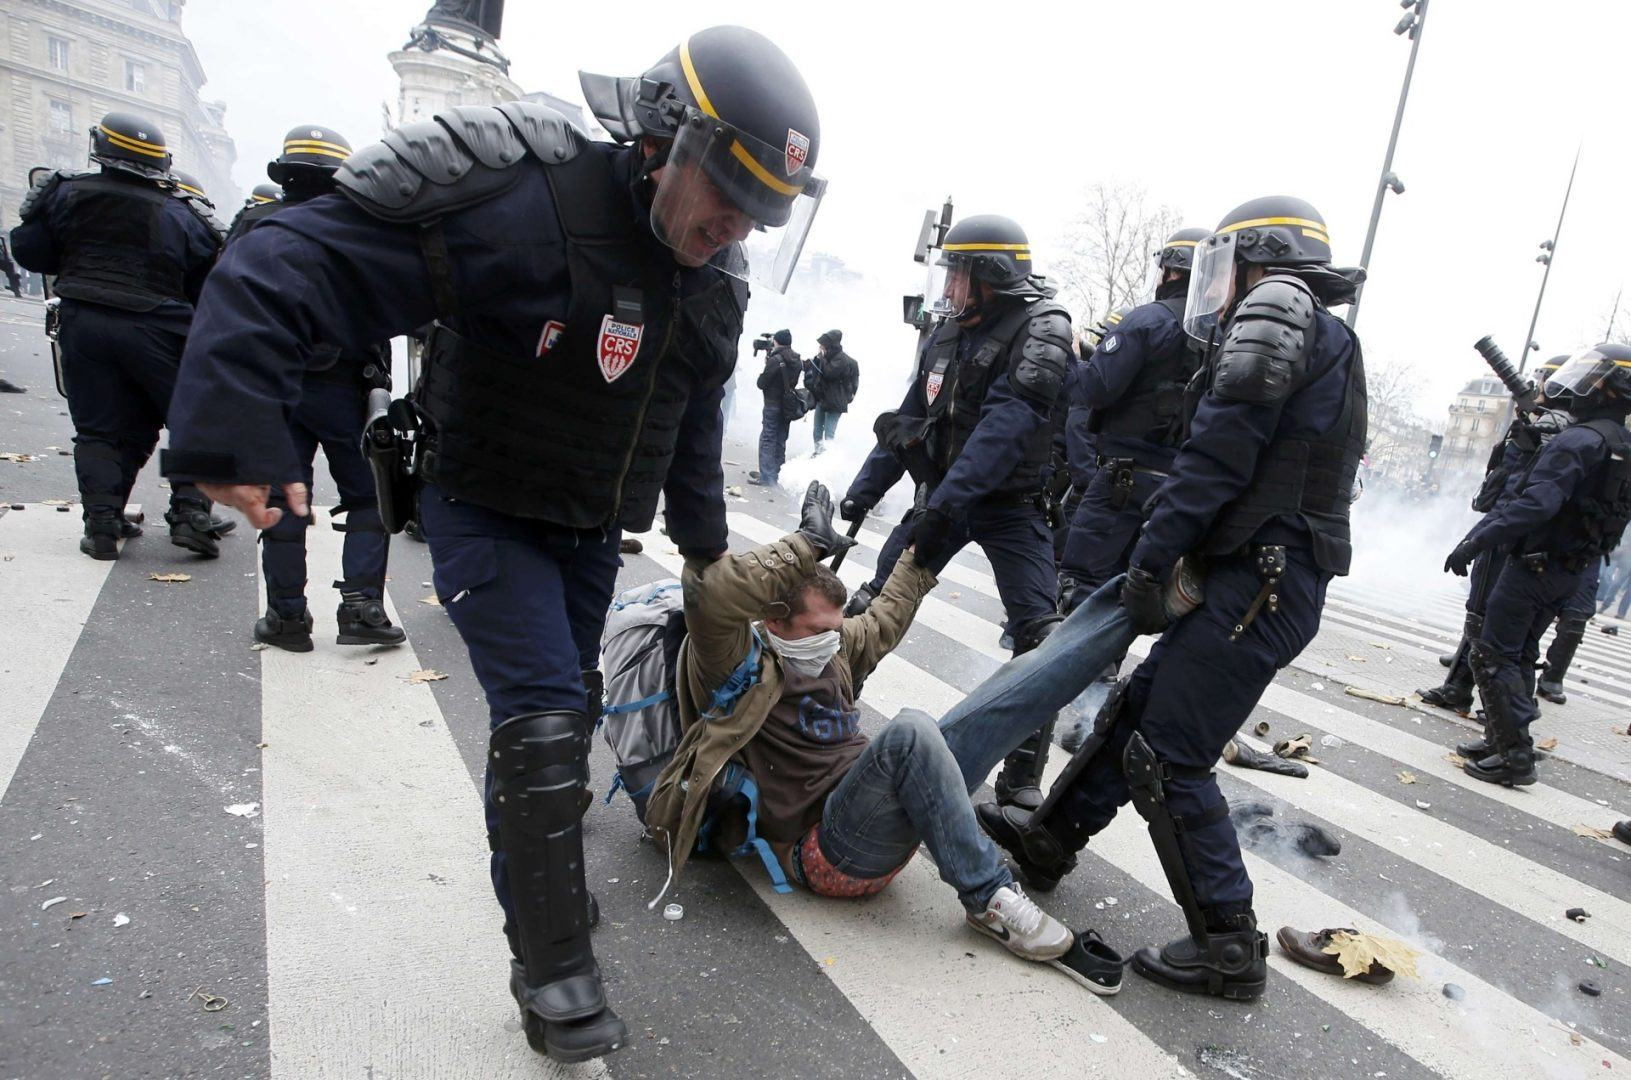 French CRS riot police apprehend a demonstrator during clashes near the Place de la Republique after the cancellation of a planned climate march following shootings in the French capital, ahead of the World Climate Change Conference 2015 (COP21), in Paris, France, November 29, 2015.          REUTERS/Eric Gaillard   TPX IMAGES OF THE DAY